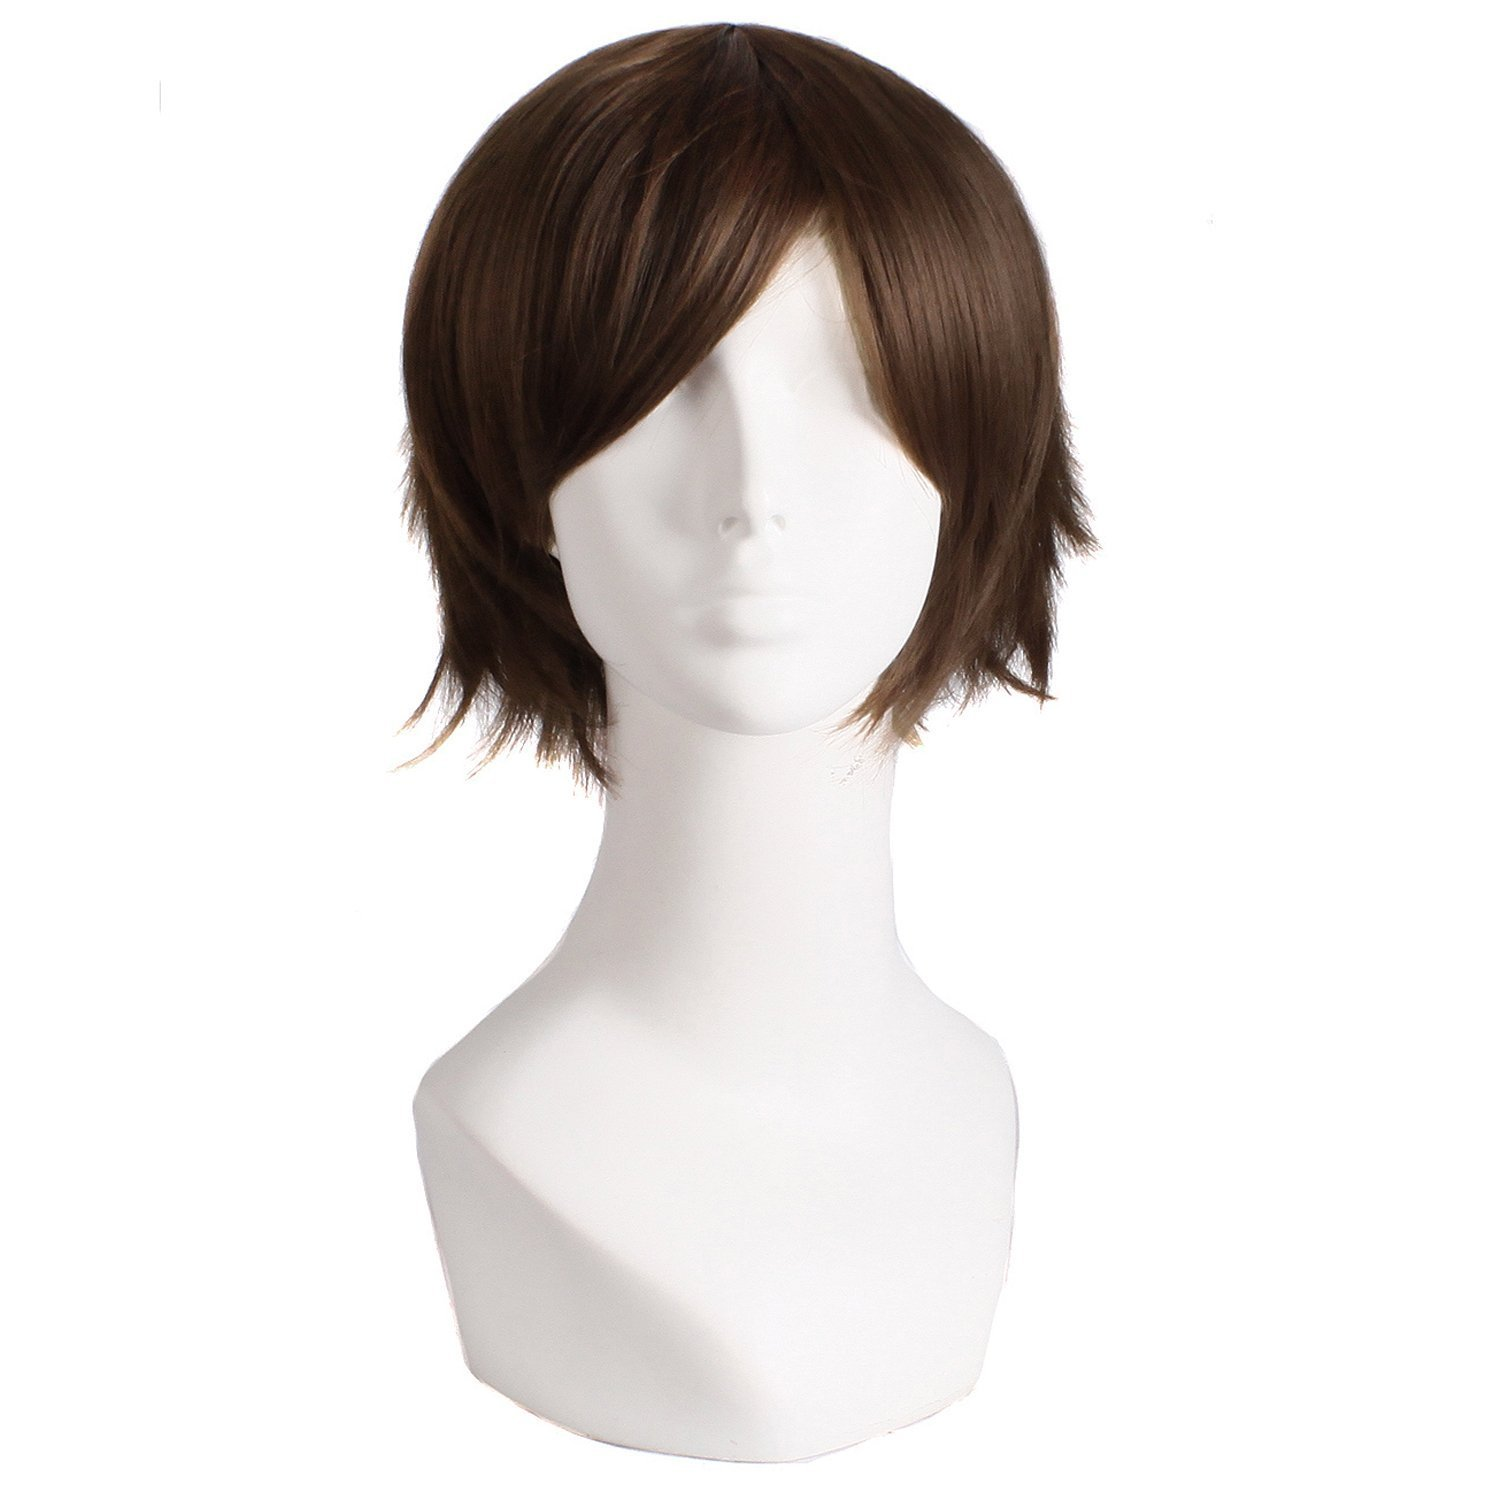 MapofBeauty Men's Short Straight Wig Cosplay Costume Wig (Red)